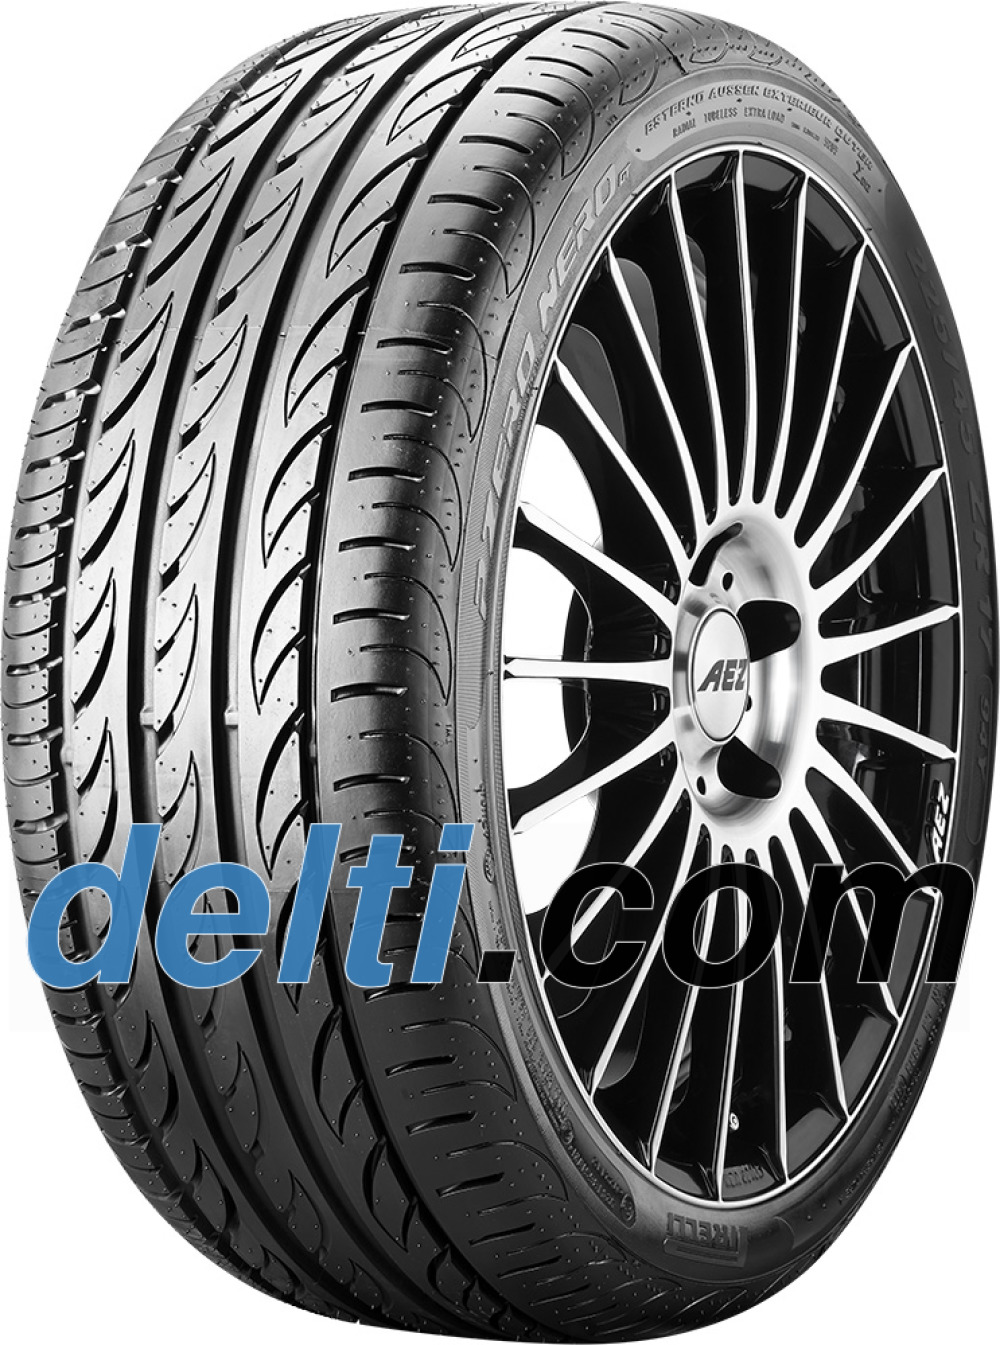 Pirelli P Zero Nero GT ( 235/45 ZR17 97Y XL with rim protection (MFS) )